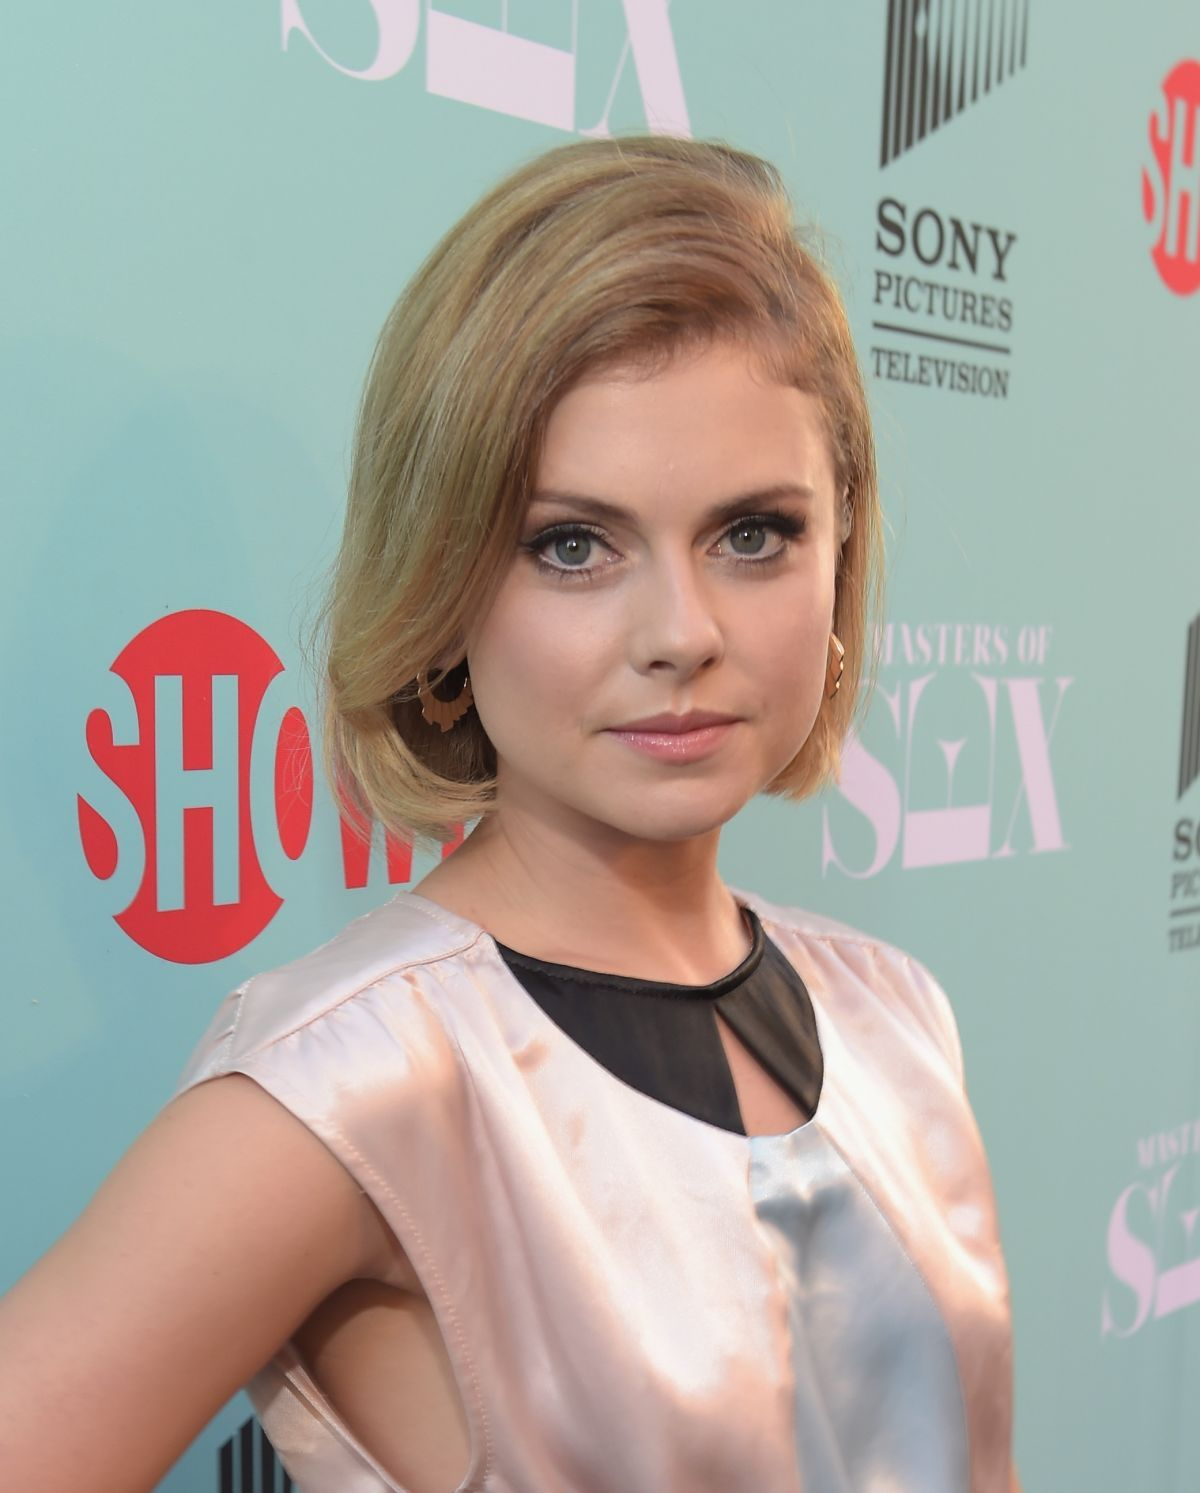 rose mciver relationshiprose mciver tinkerbell, rose mciver izombie, rose mciver hot izombie, rose mciver power rangers, rose mciver личная жизнь, rose mciver png, rose mciver photo, rose mciver listal, rose mciver wallpaper, rose mciver photo gallery, rose mciver interview, rose mciver birth chart, rose mciver relationship, rose mciver lovely bones, rose mciver source, rose mciver hercules, rose mciver instagram, rose mciver tumblr, rose mciver gif hunt, rose mciver once upon a time